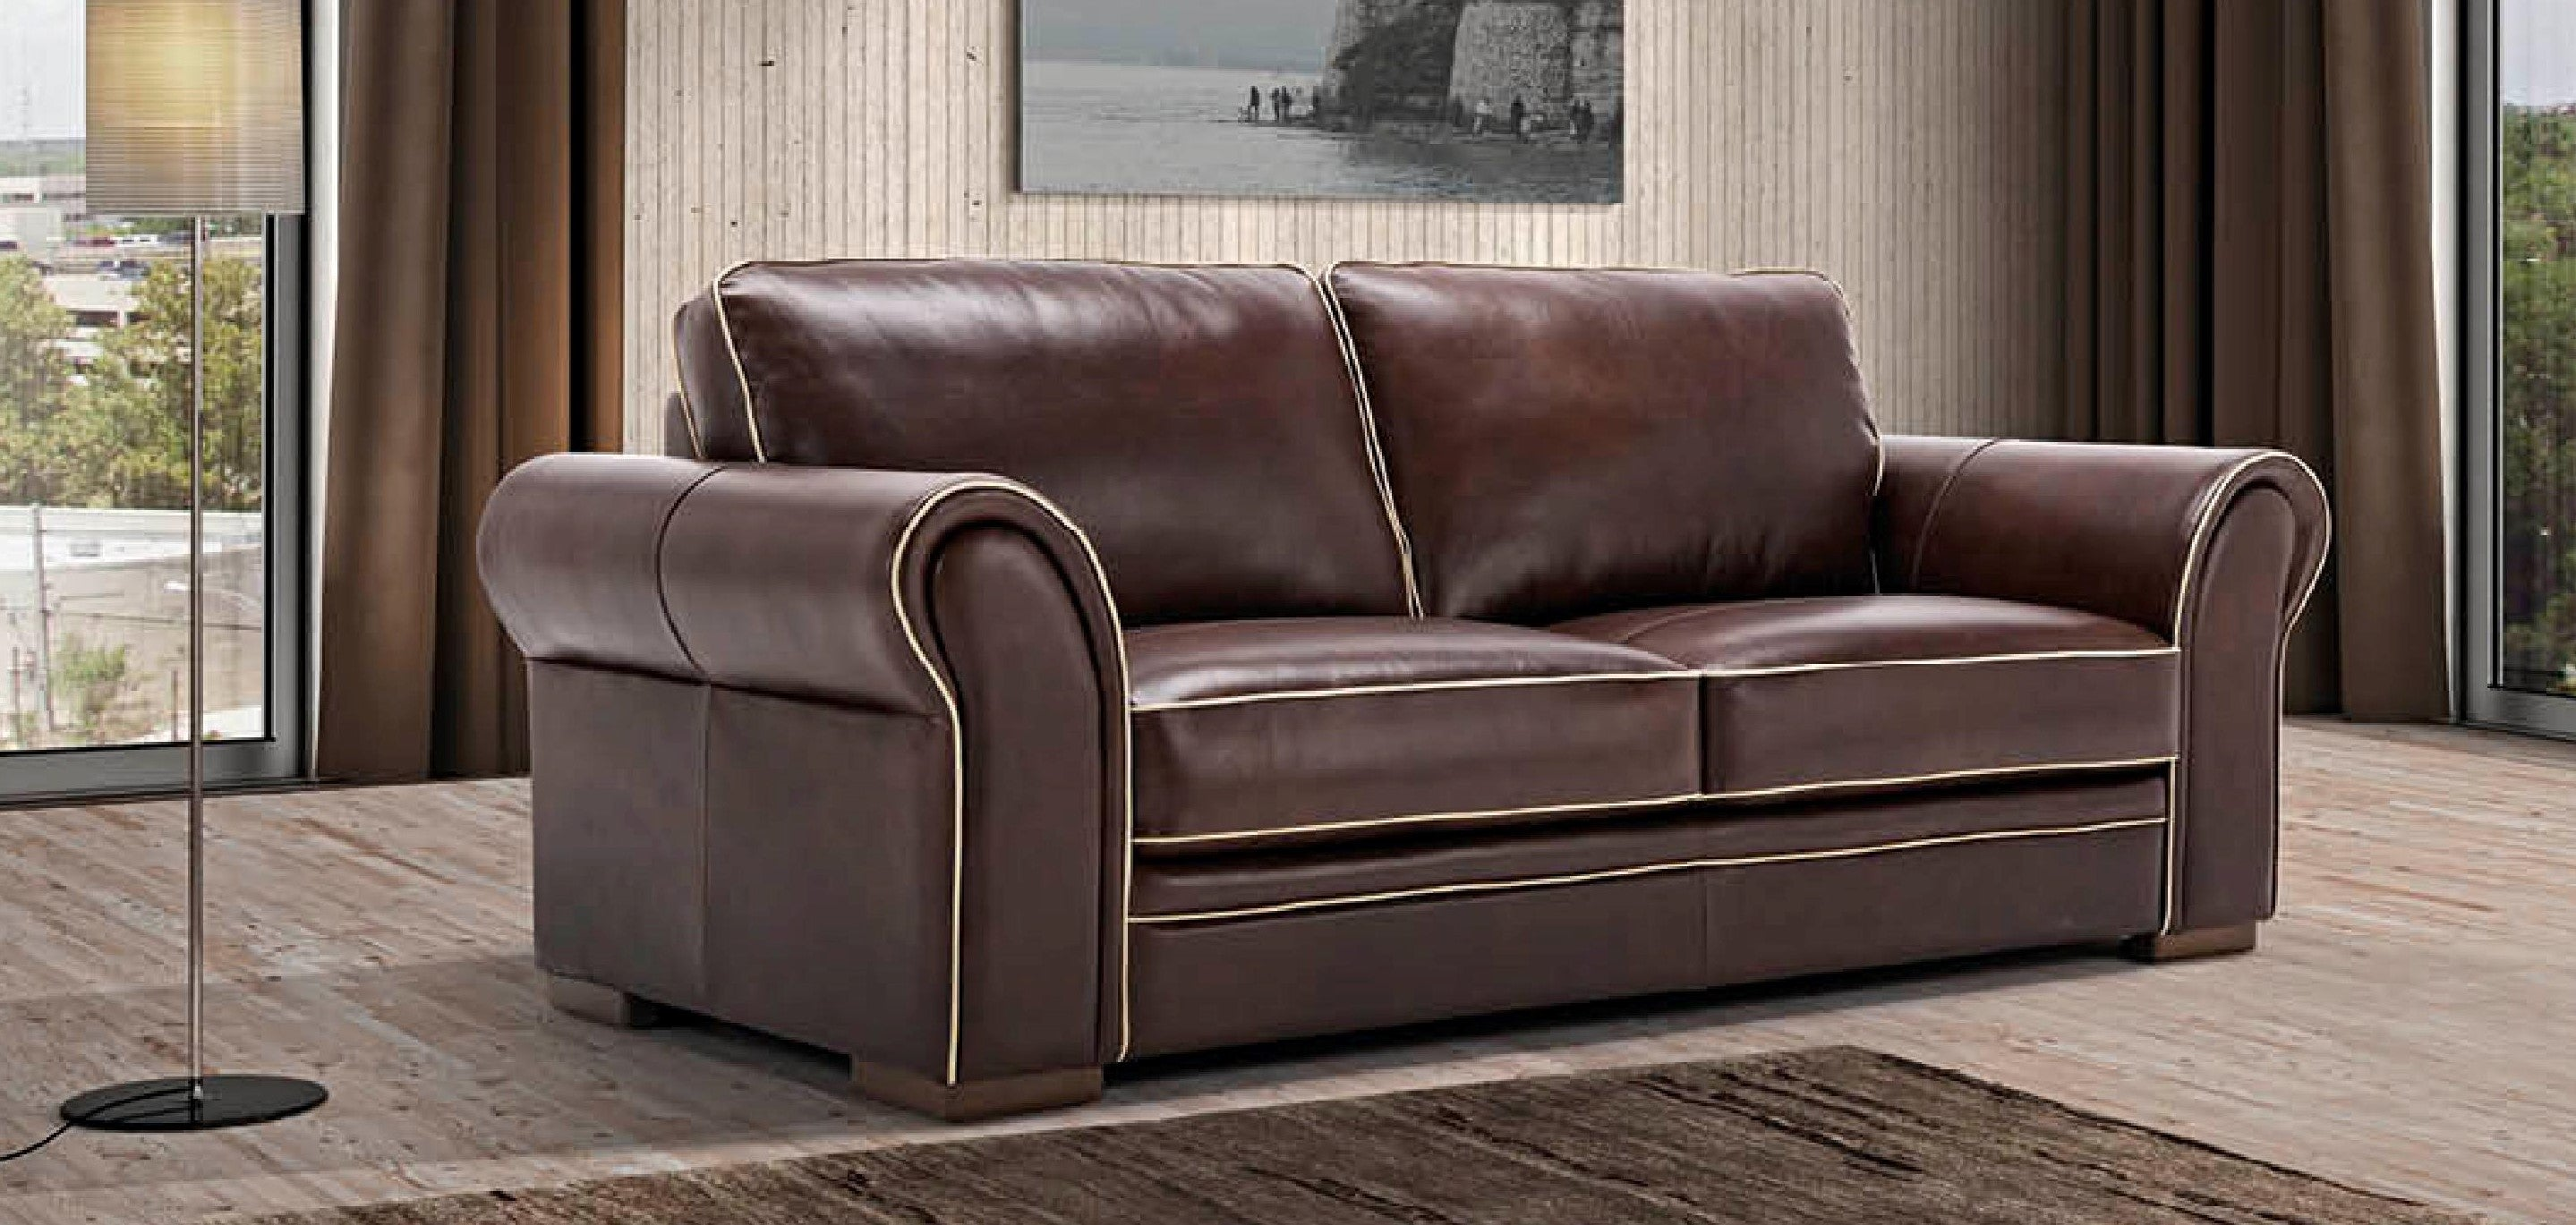 Luxury Leather Furniture In Wakefield Kc Sofas